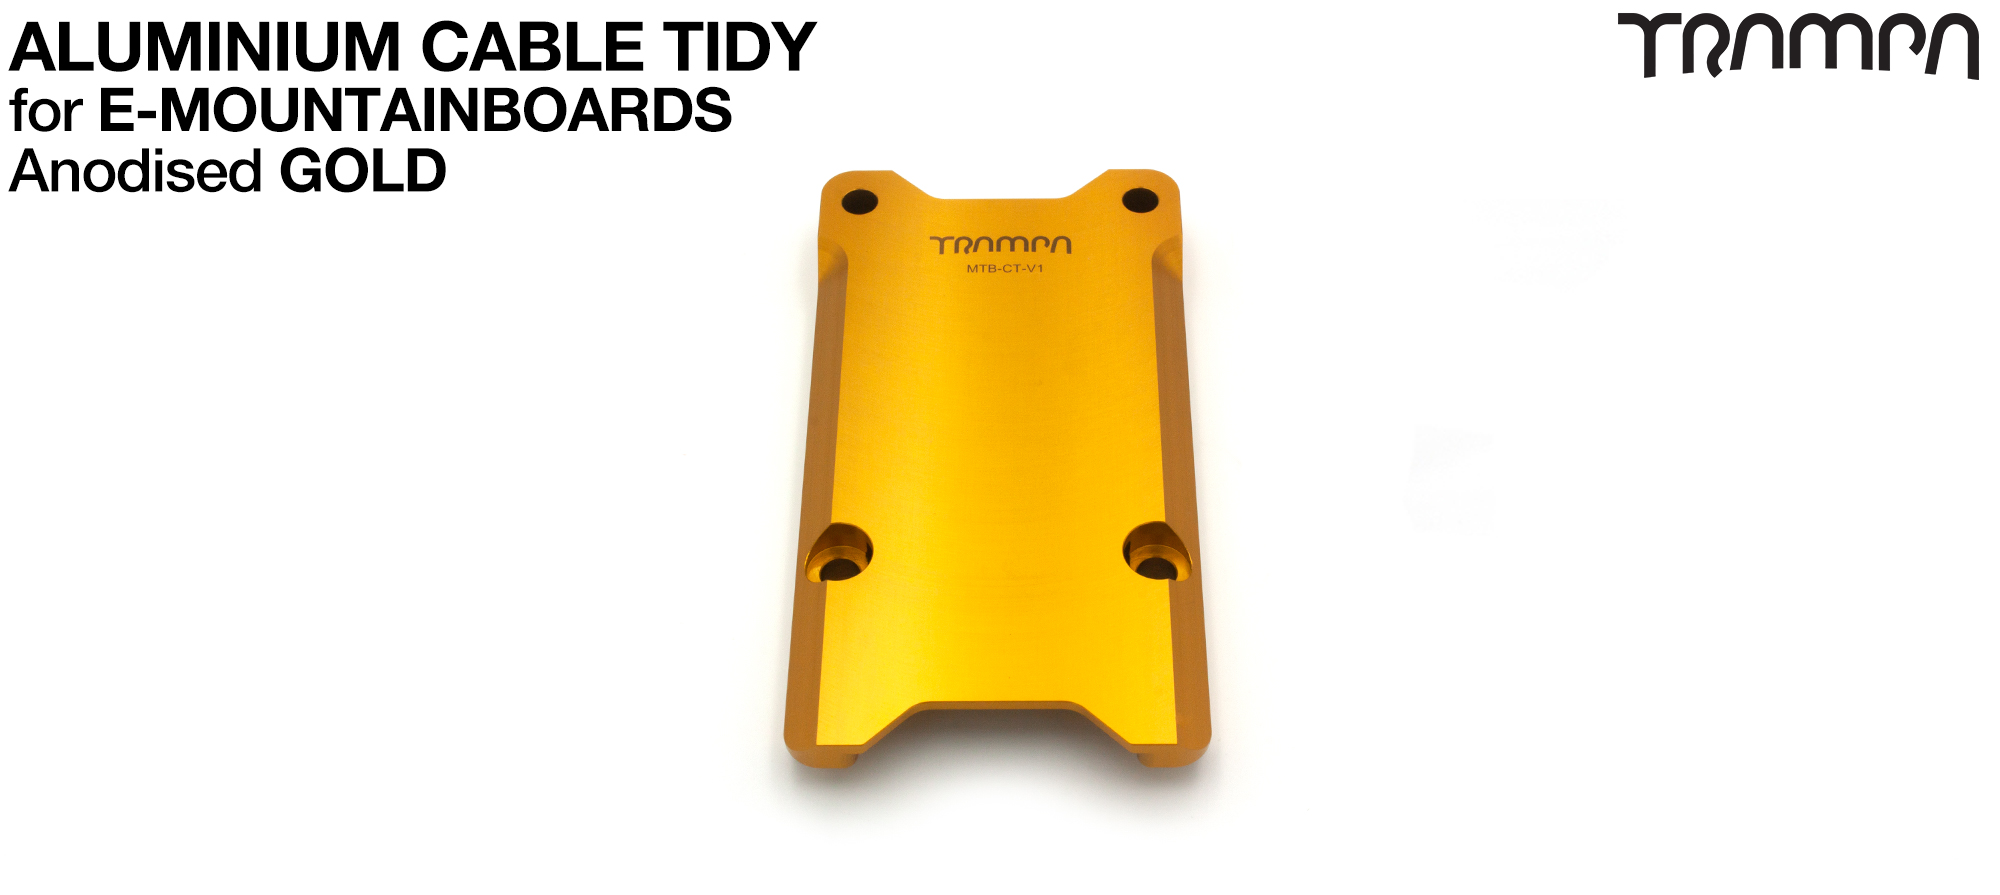 Anodised Aluminum Cable Tidy - GOLD